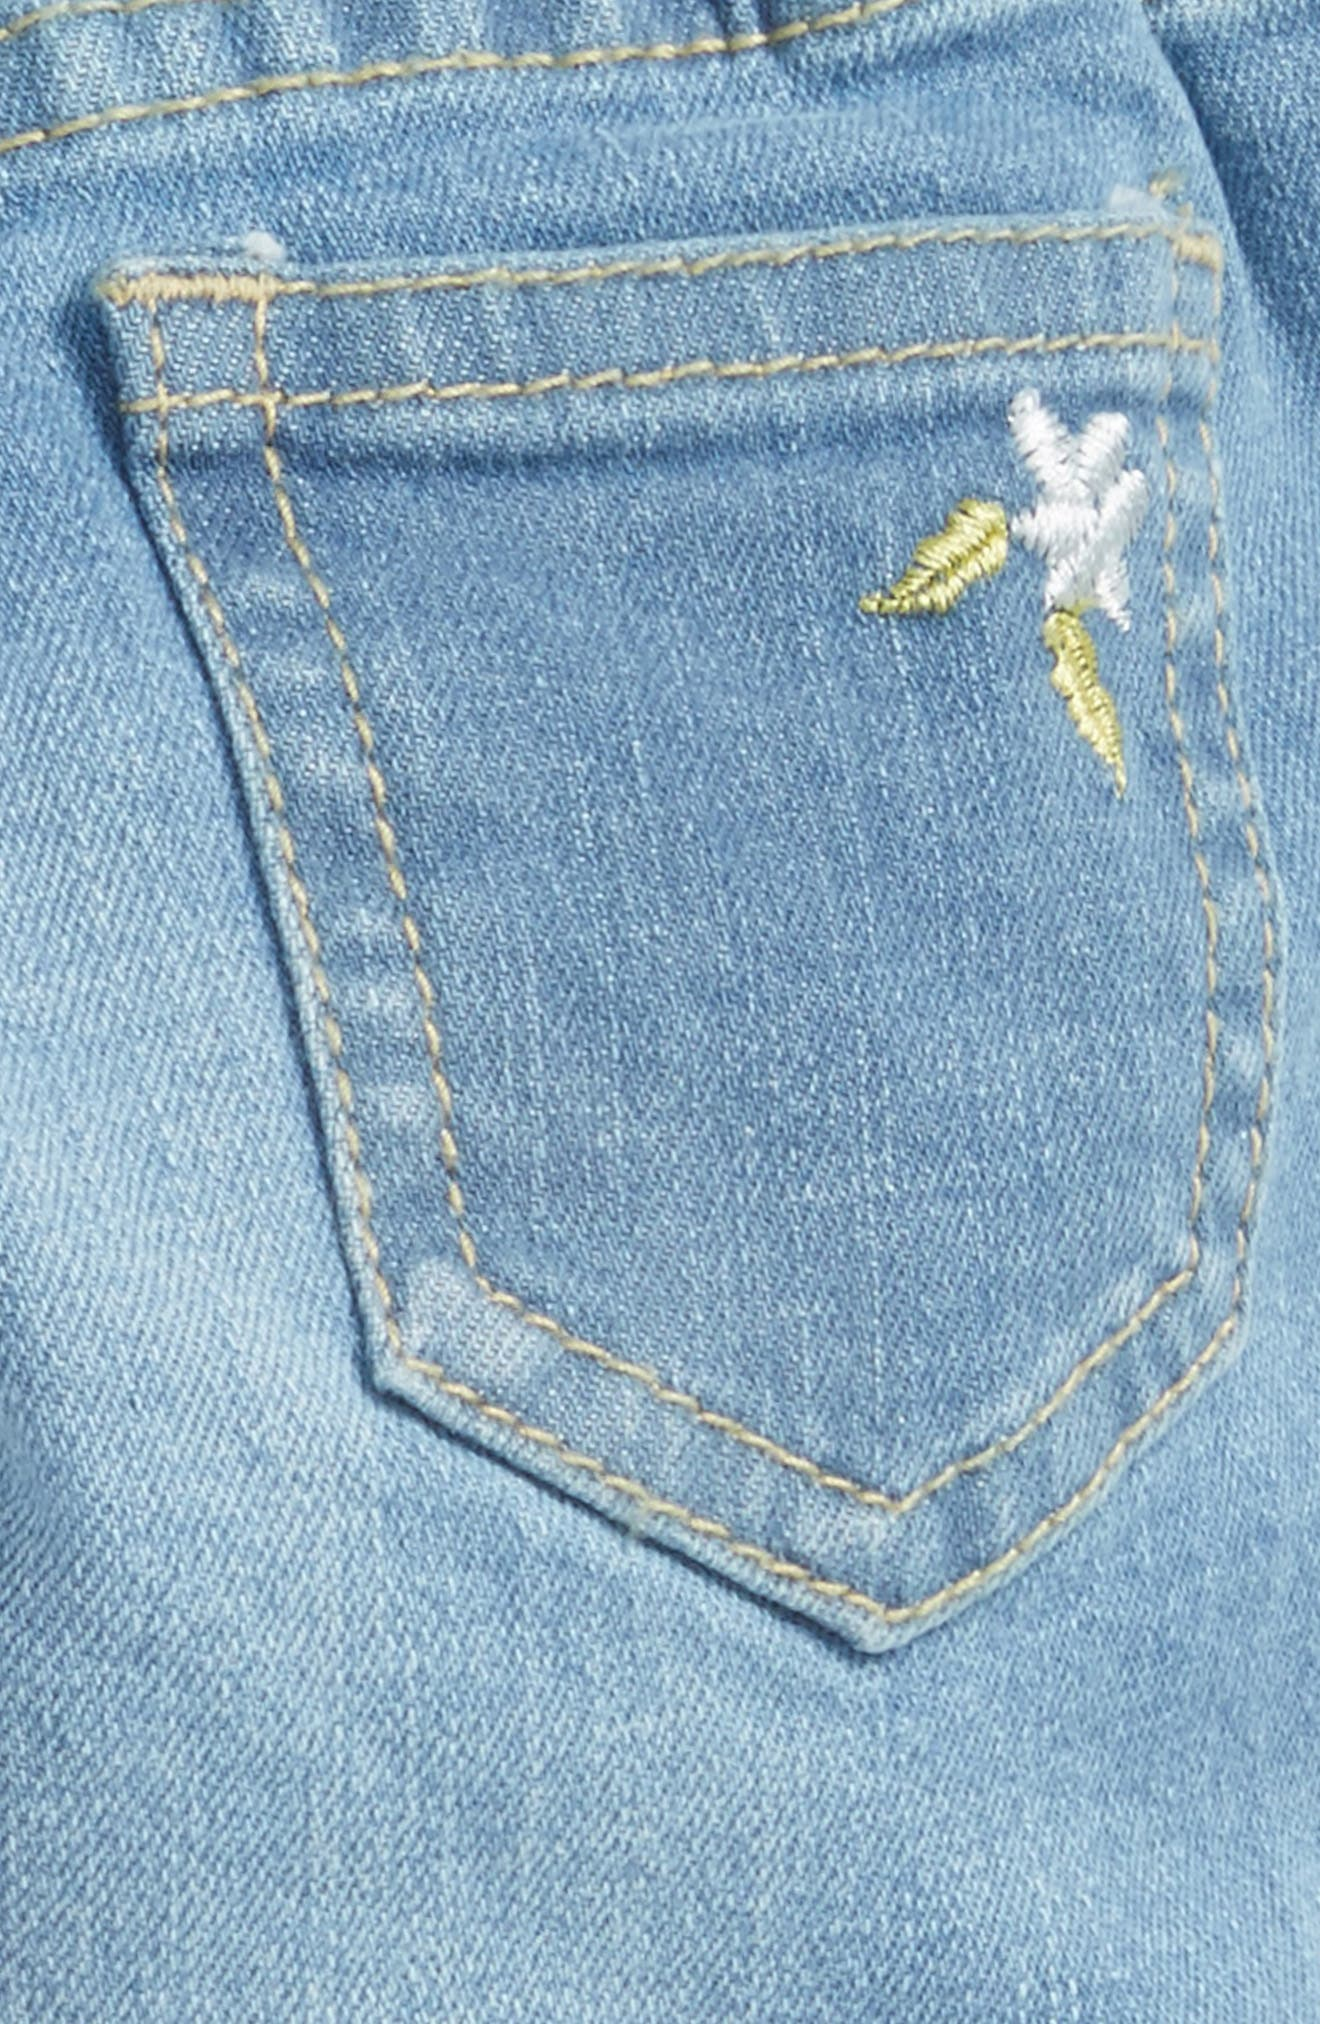 Taylor Embroidered Jeans,                             Alternate thumbnail 3, color,                             404